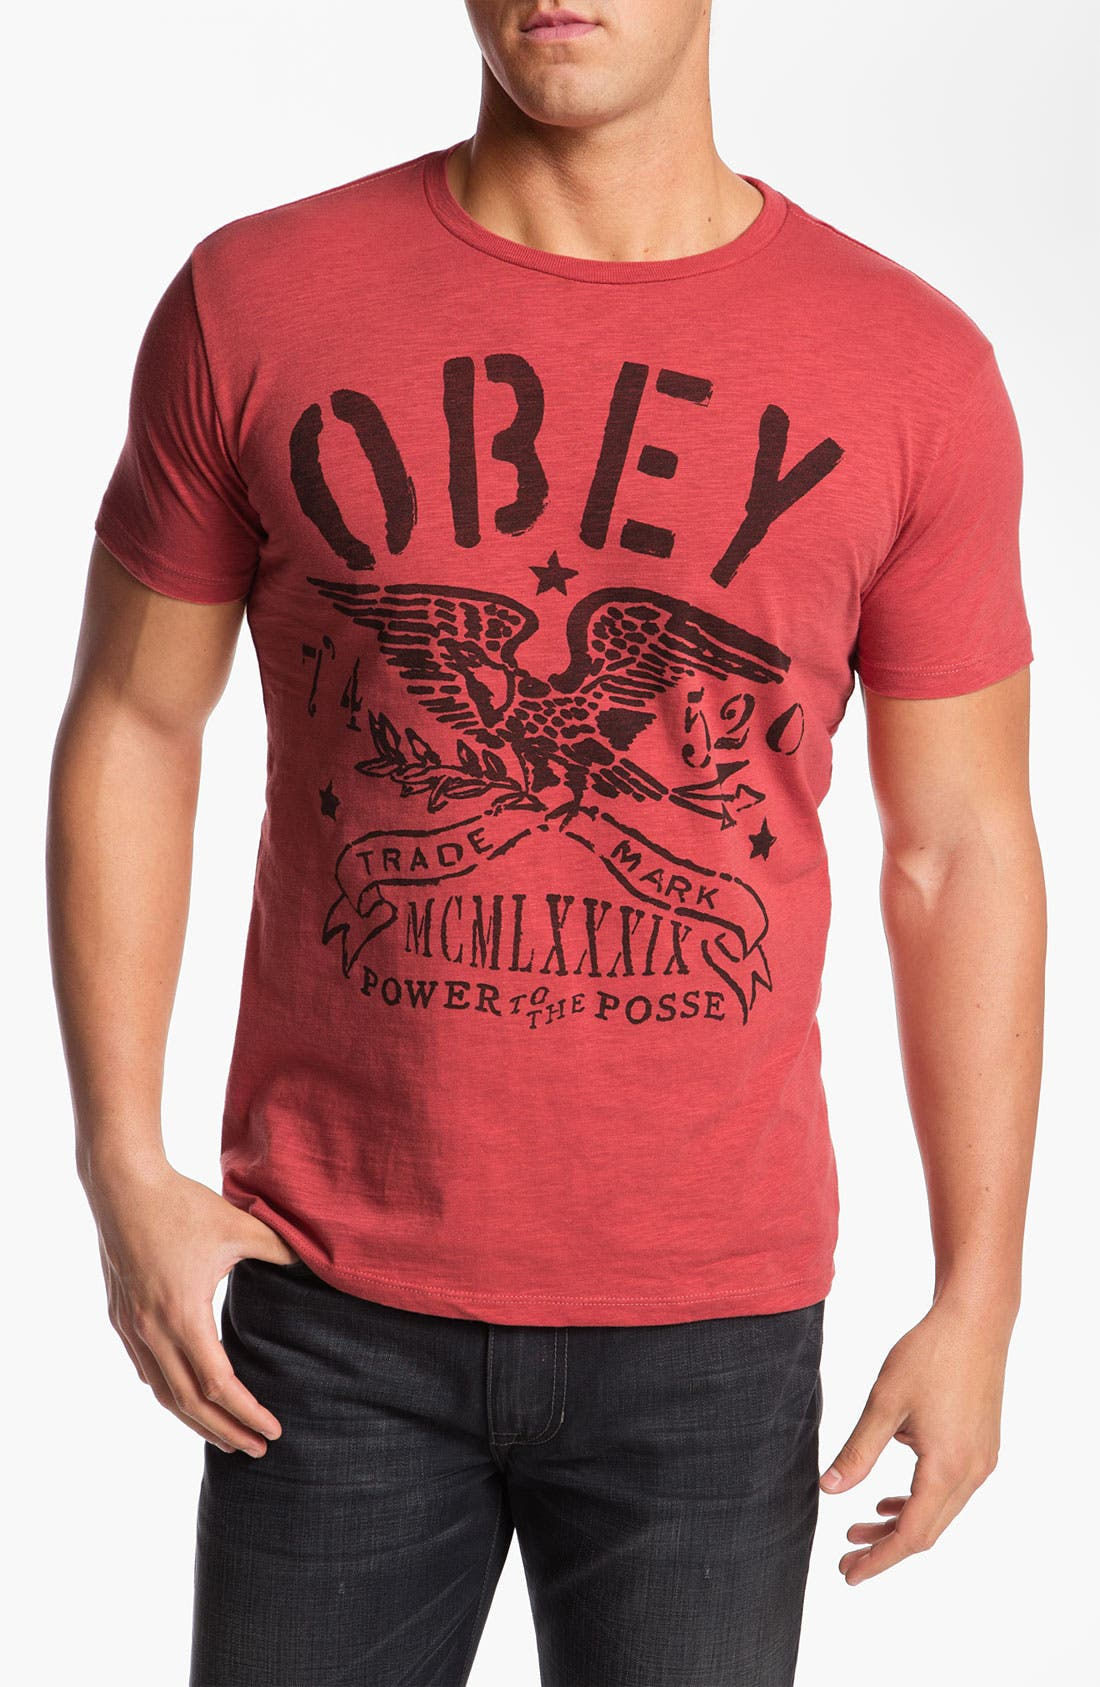 Alternate Image 1 Selected - Obey 'Trademark Eagle' T-Shirt